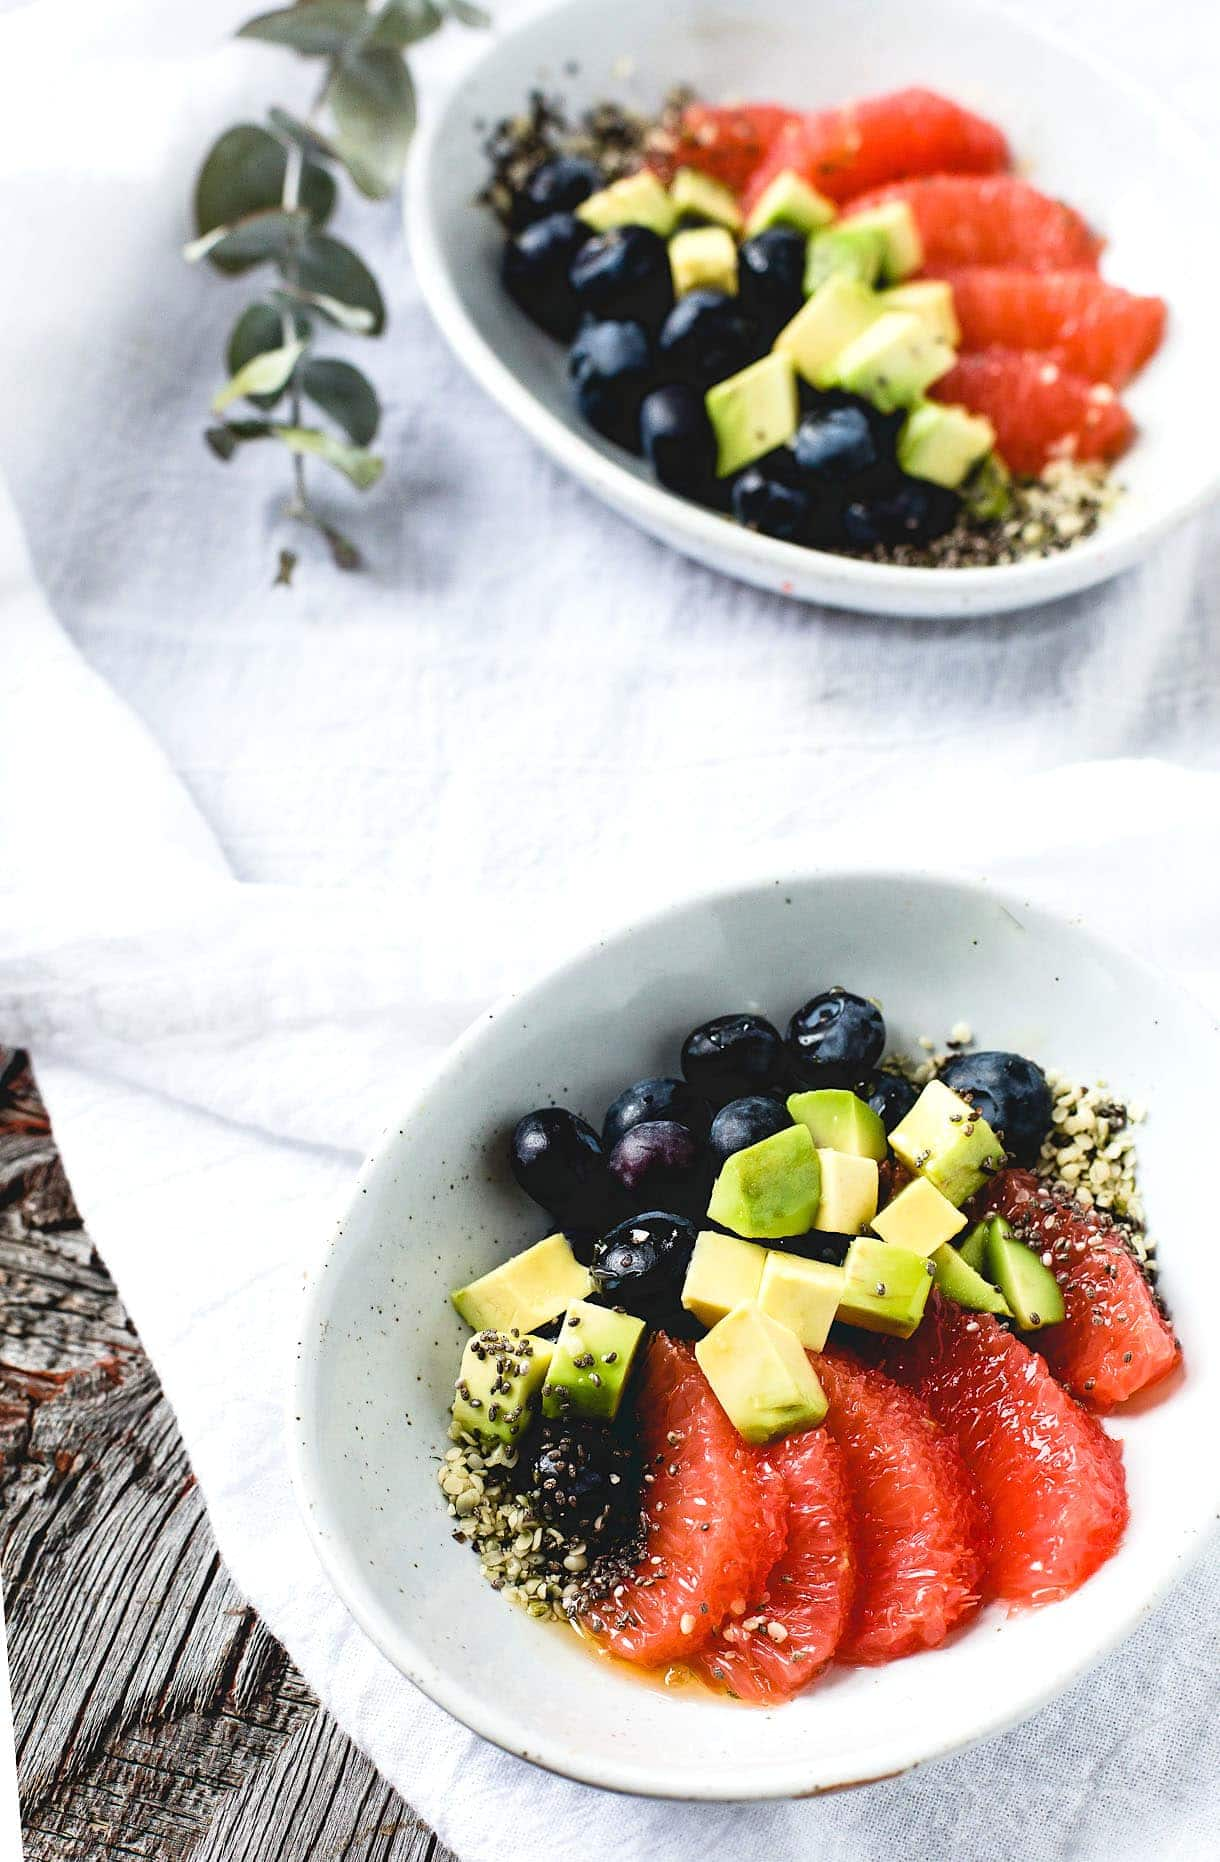 Super Sparklin' Fruit Salad with Avocado + Seeds